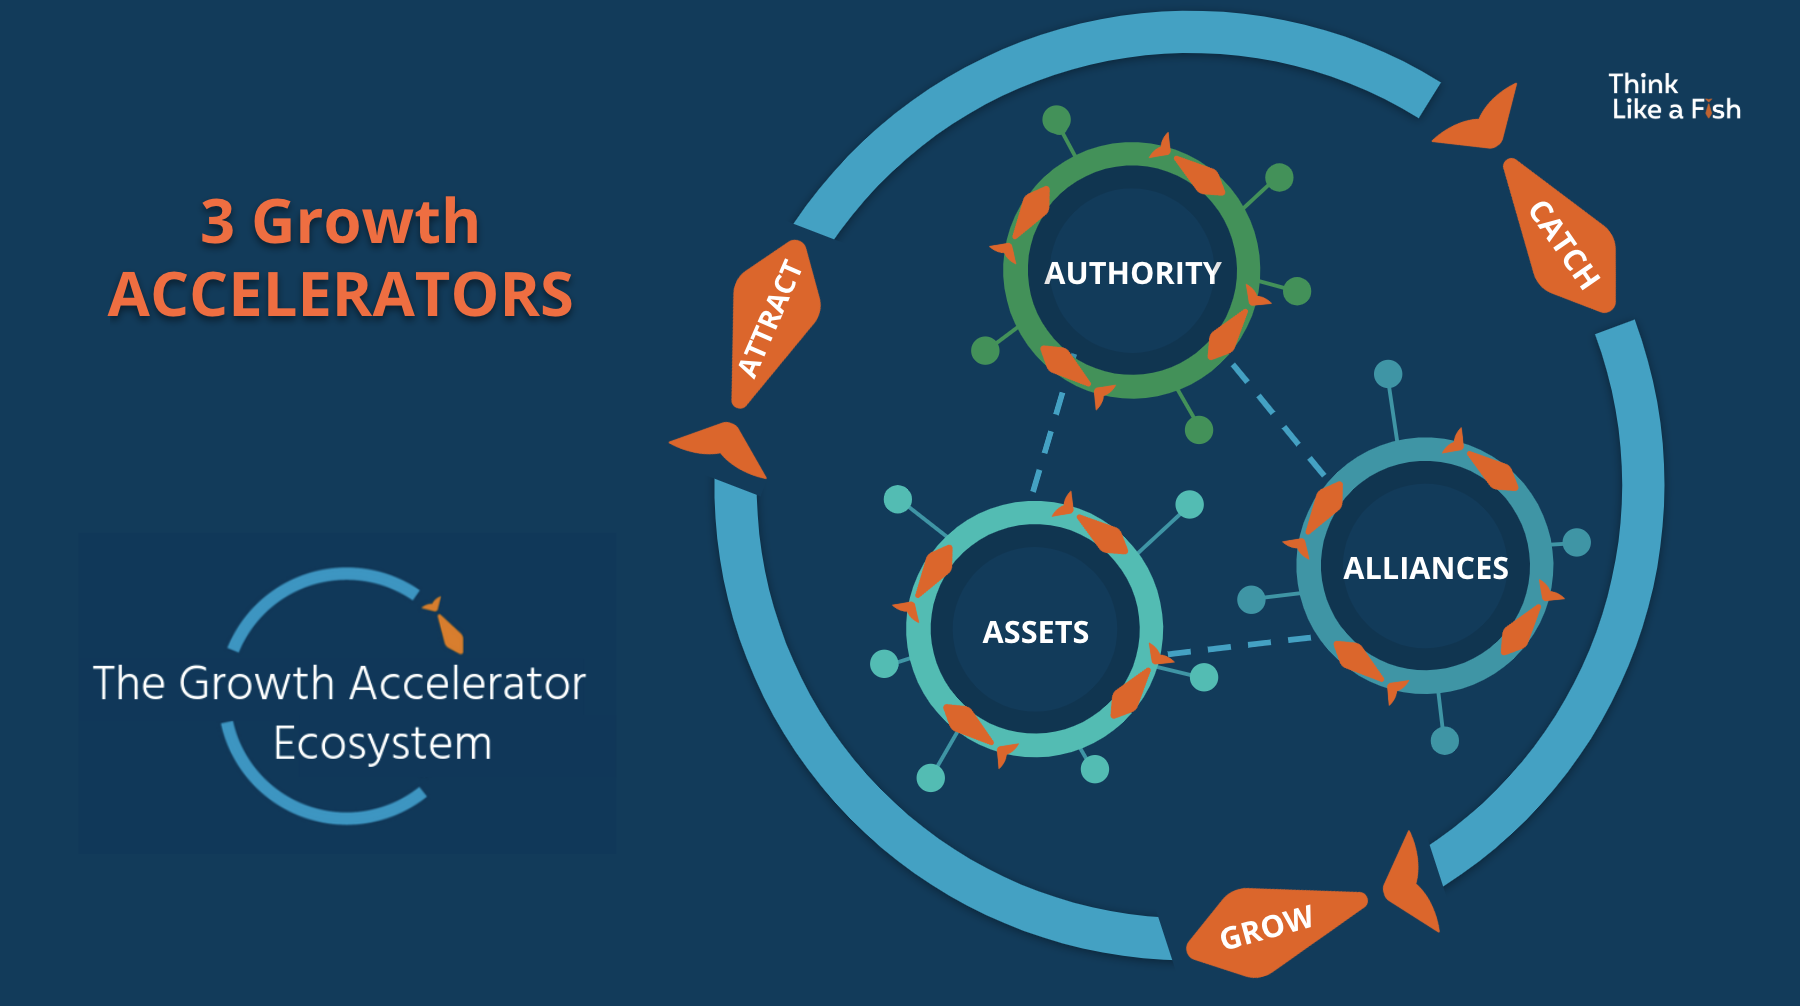 The Growth Accelerator Ecosystem